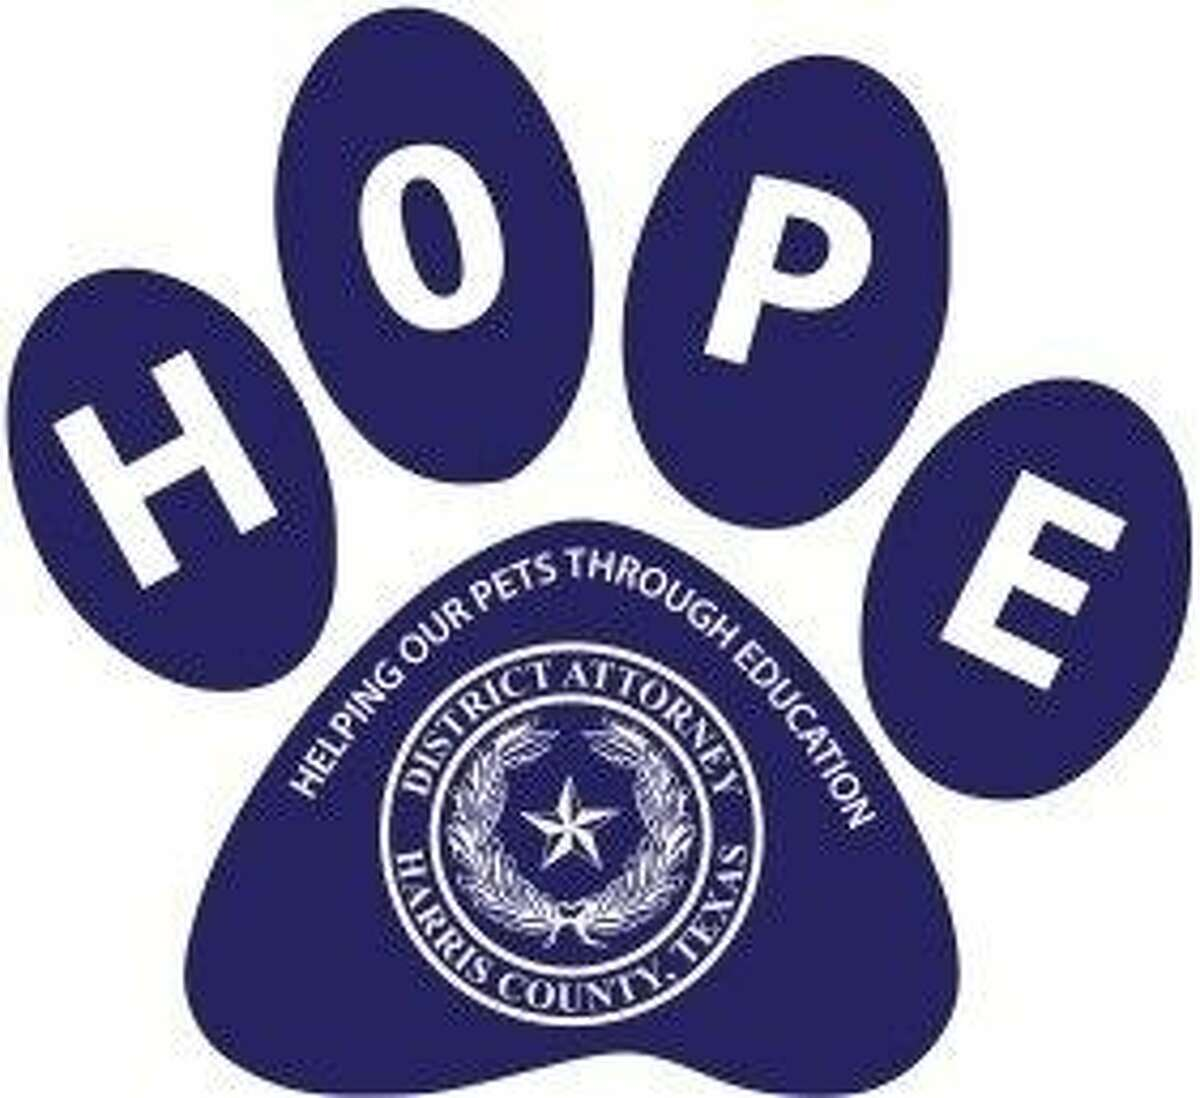 New pilot program called HOPE (Helping Our Pets through Education) is designed to educate elementary school aged children on how to properly care for their pets.